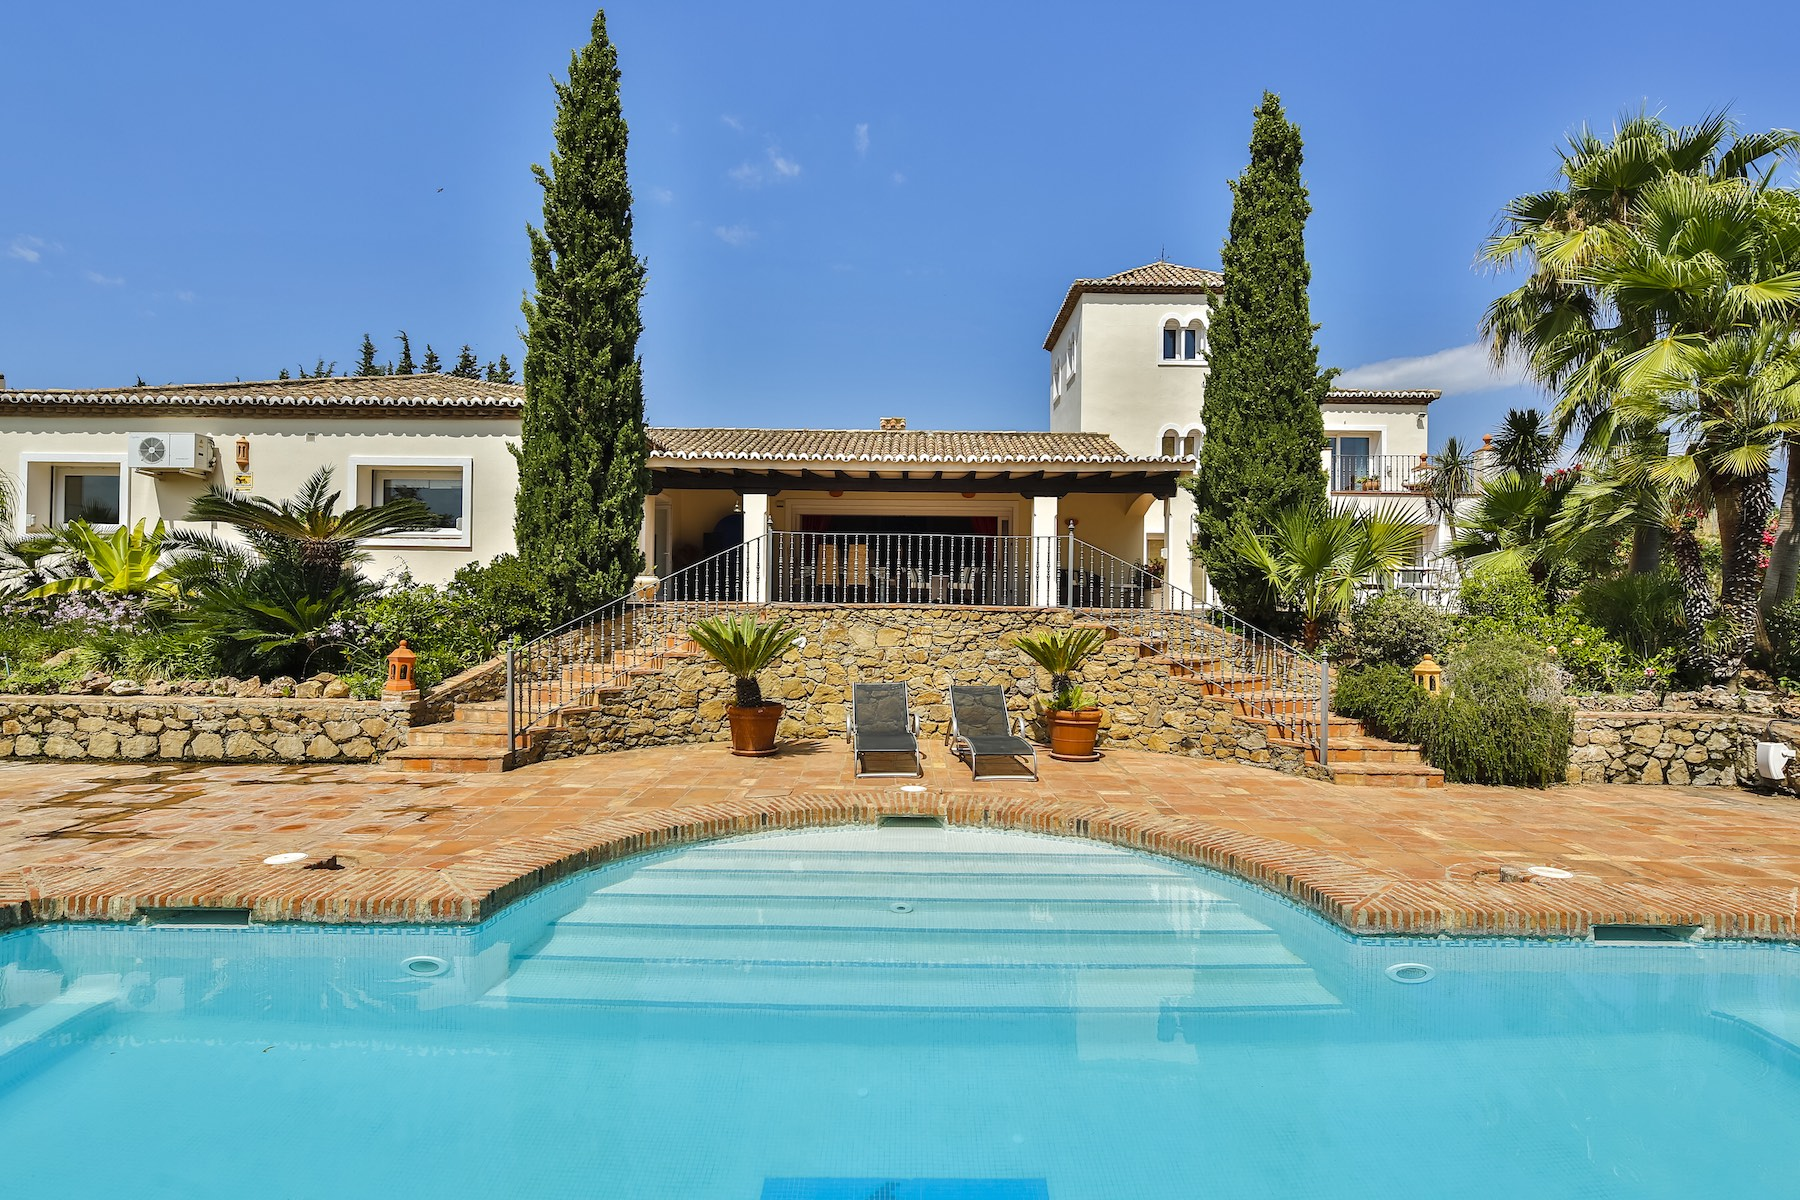 Single Family Home for Sale at Luxurious country villa close the exclusive Los Flamingos golf & country club Benahavis, Benahavis, 29679 Other Andalucia, Andalucia, 29679 Spain